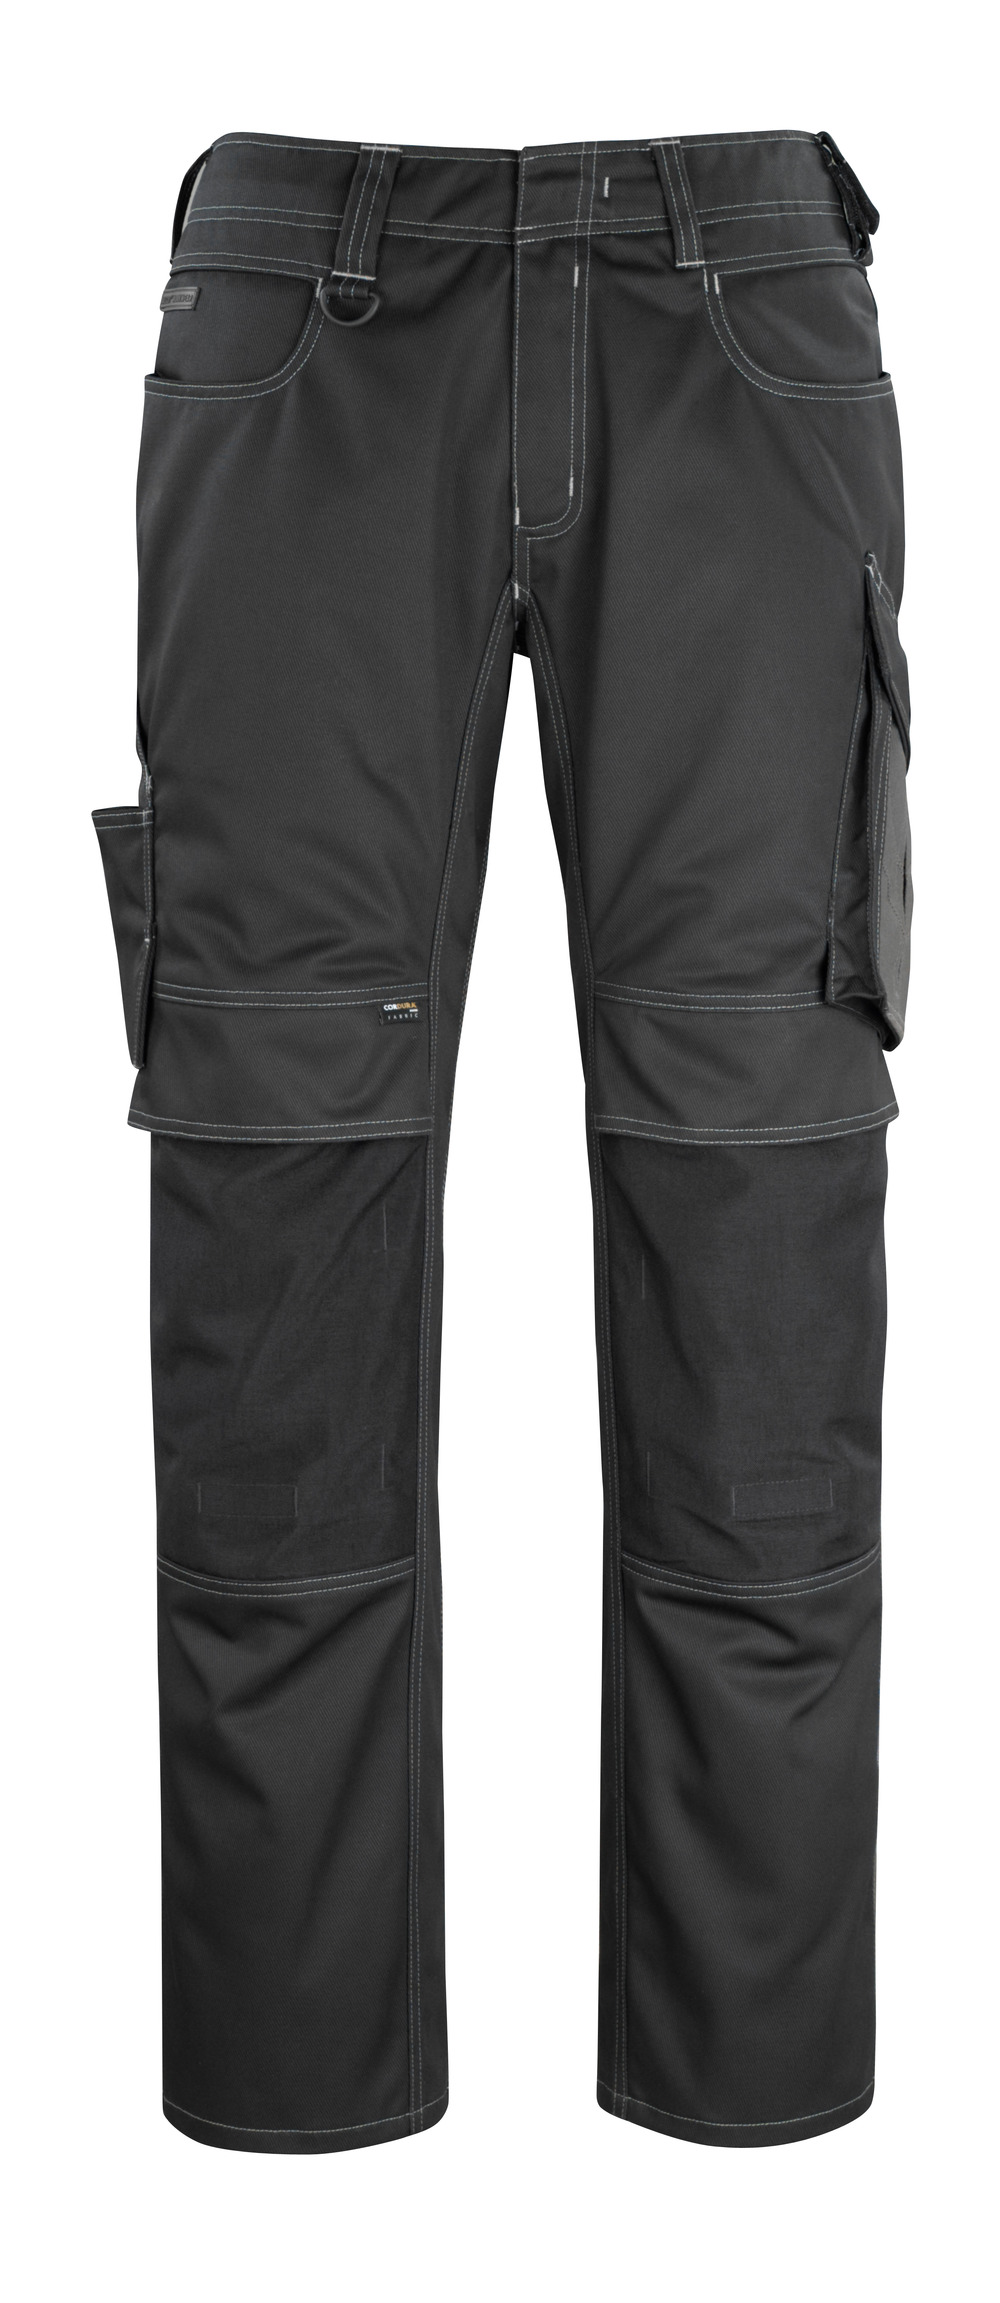 12179-203-0918 Pants with kneepad pockets - black/dark anthracite